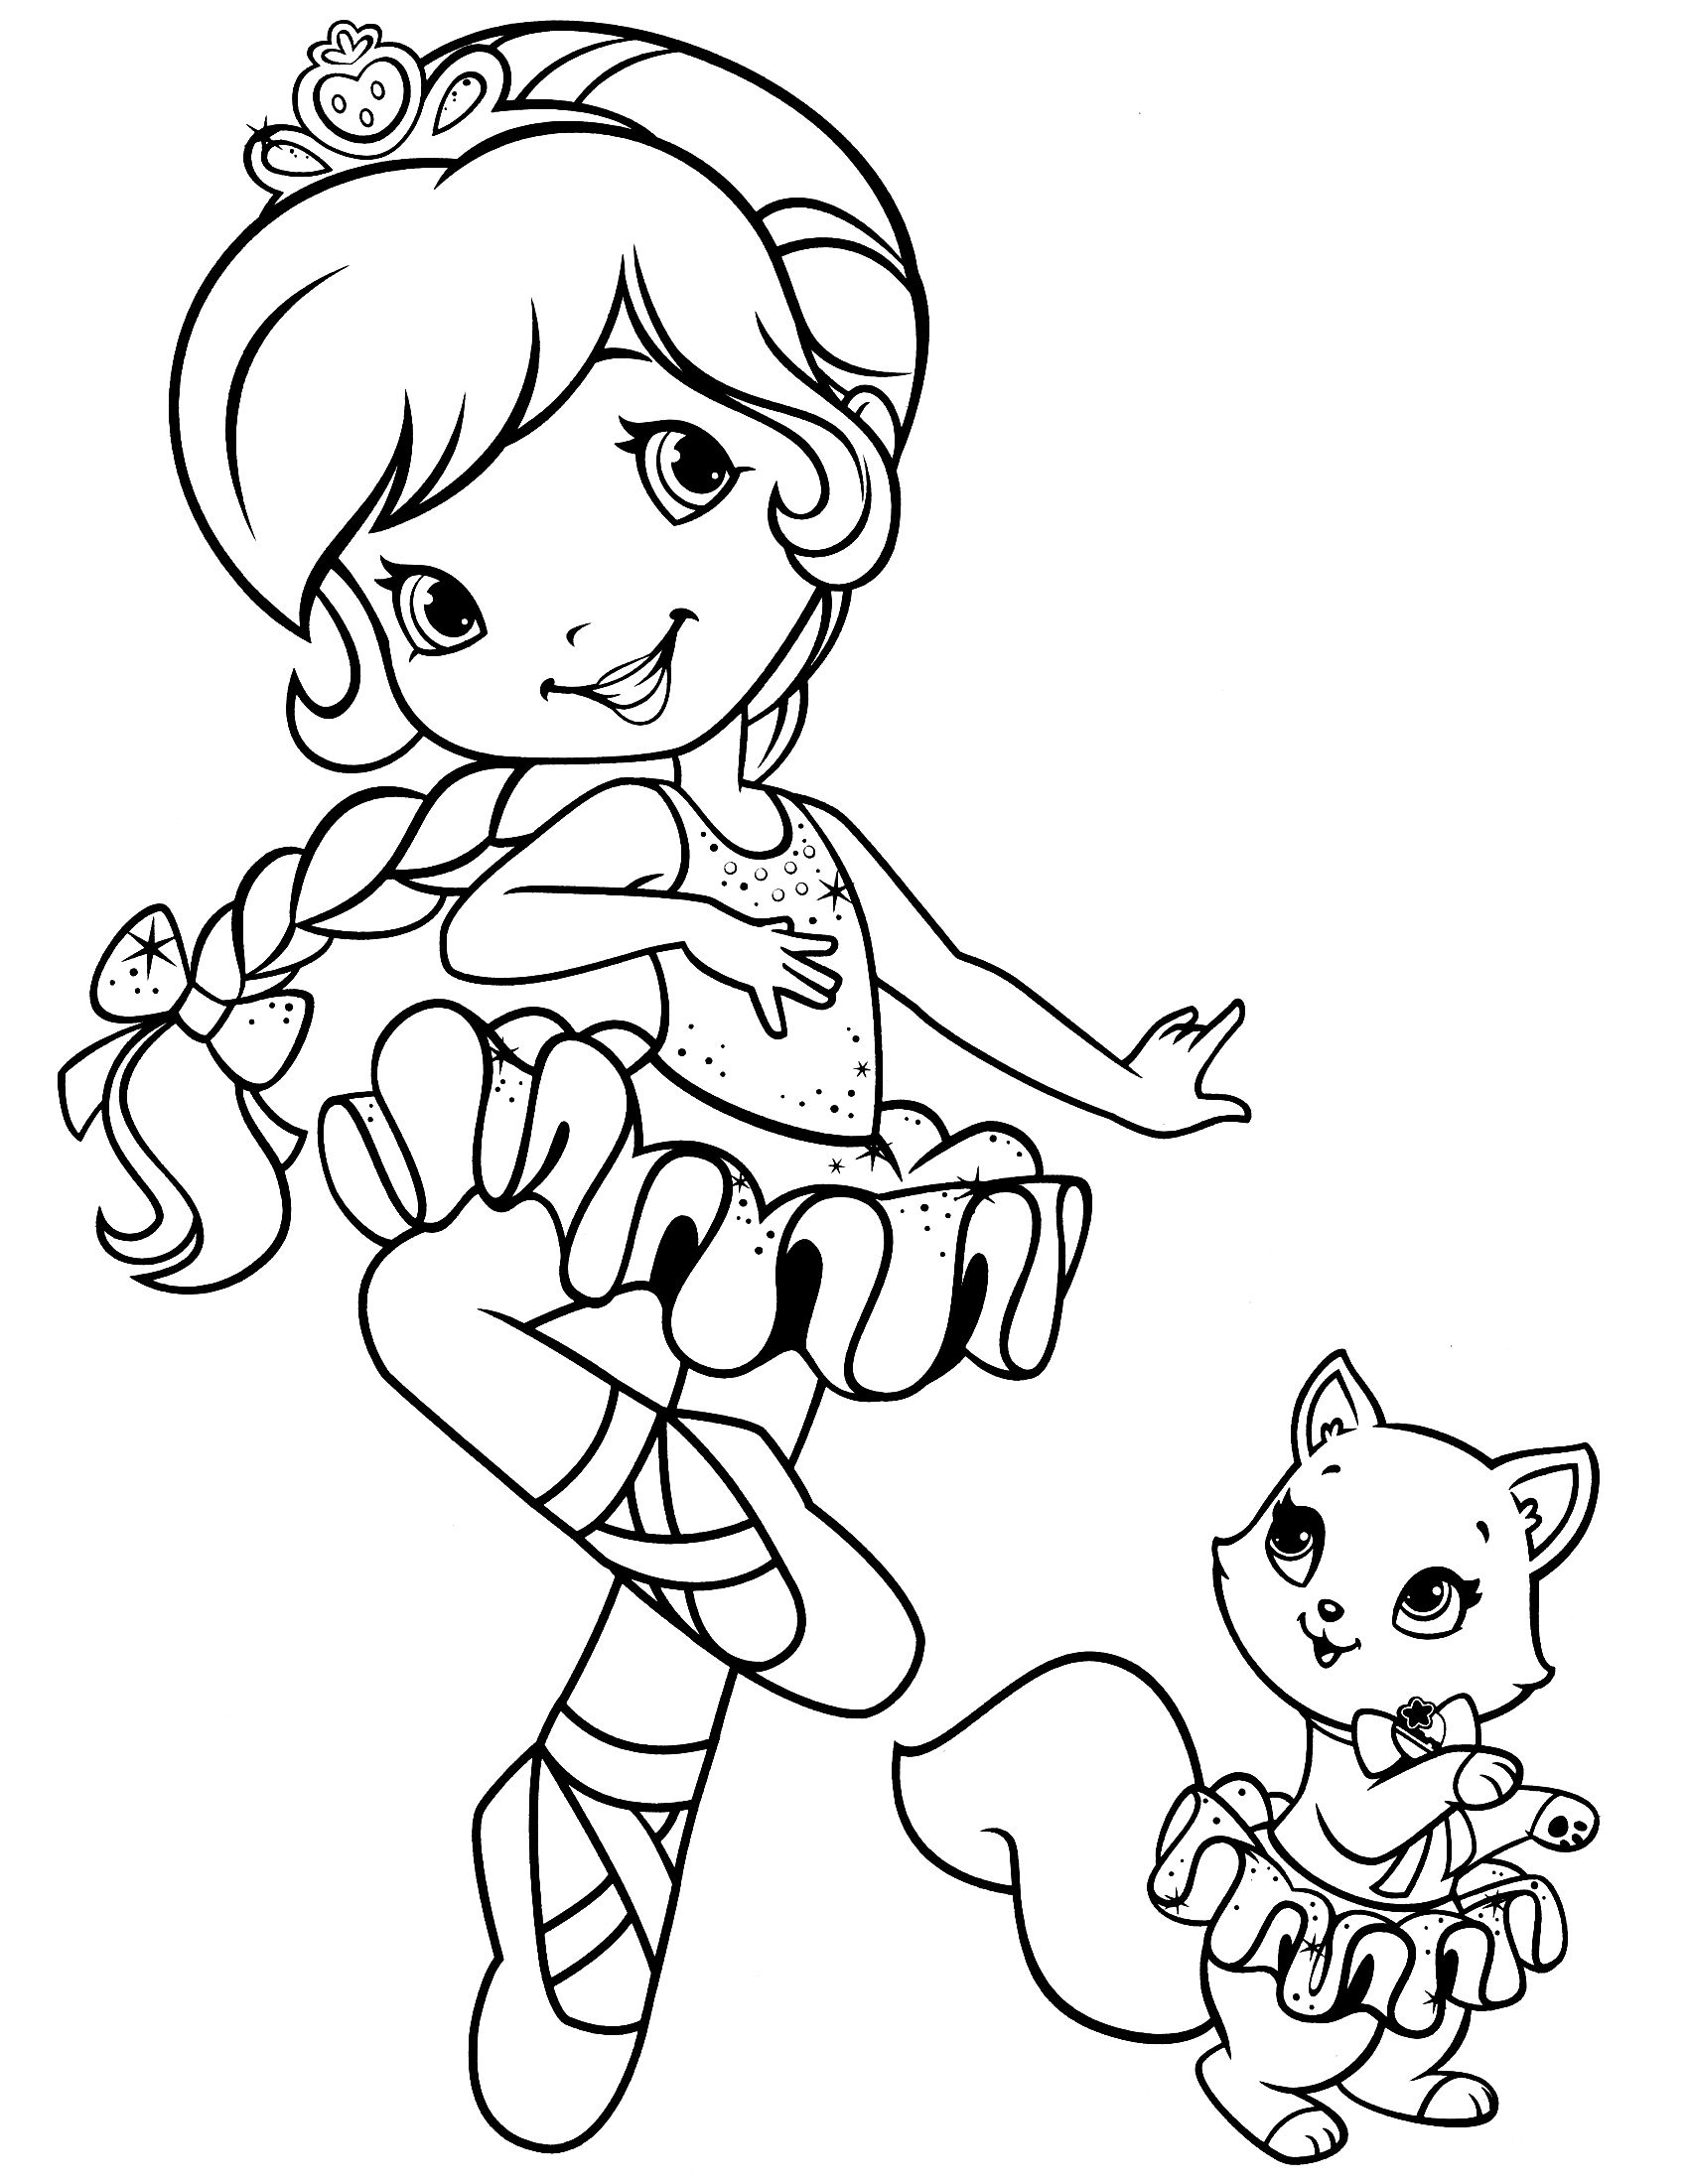 Strawberry Shortcake Coloring Page 35 Jpg 1700 2200 Dibujos